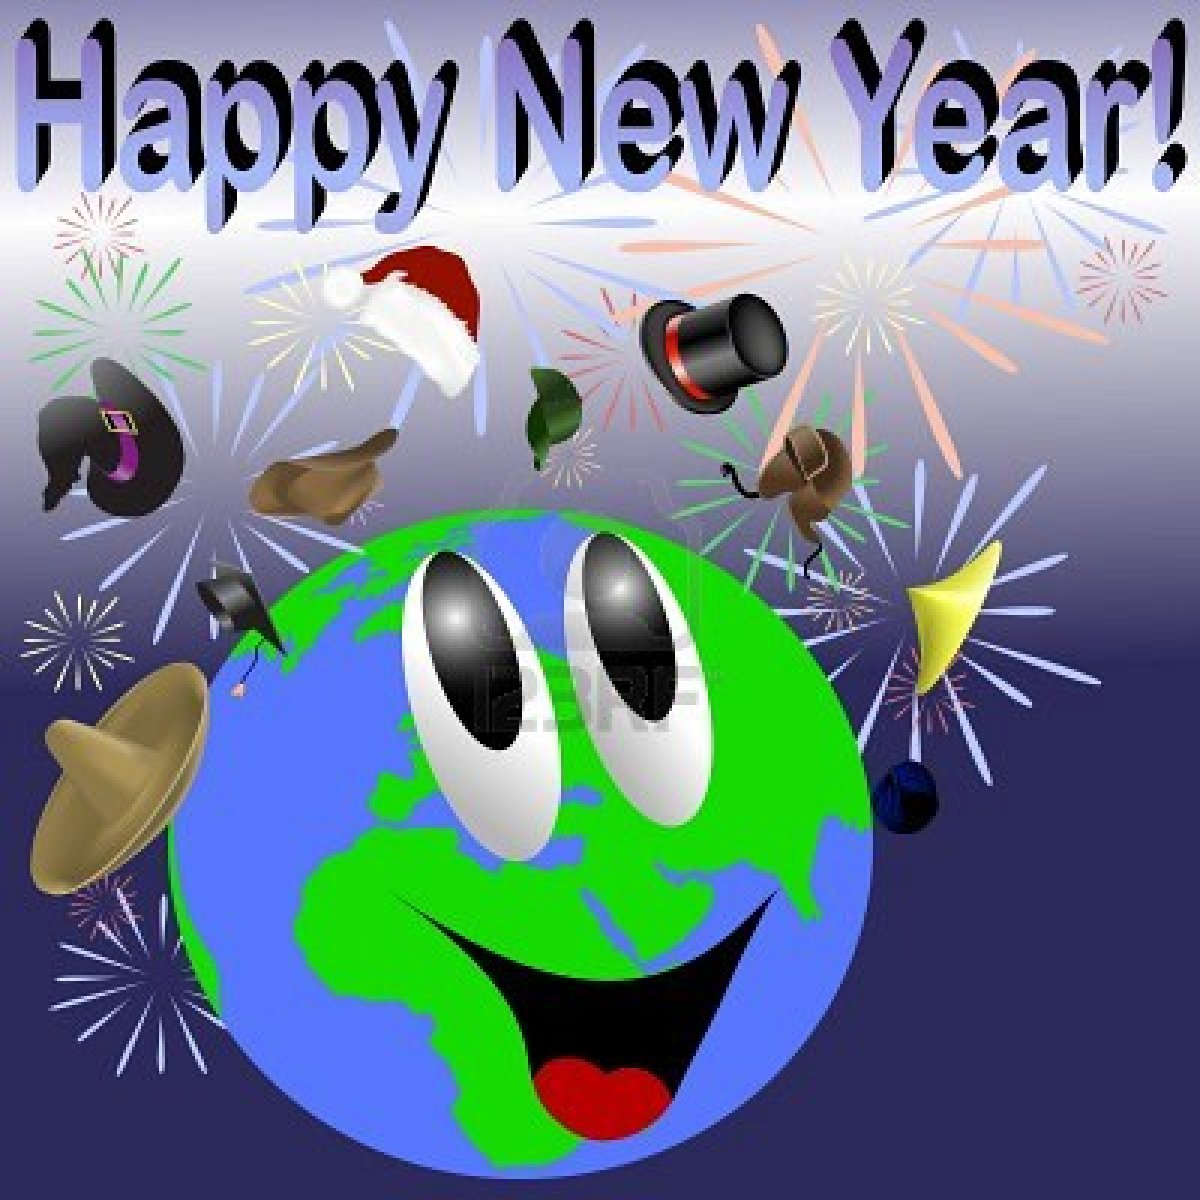 Happy new year european american blog - Happy new year sound europe ...